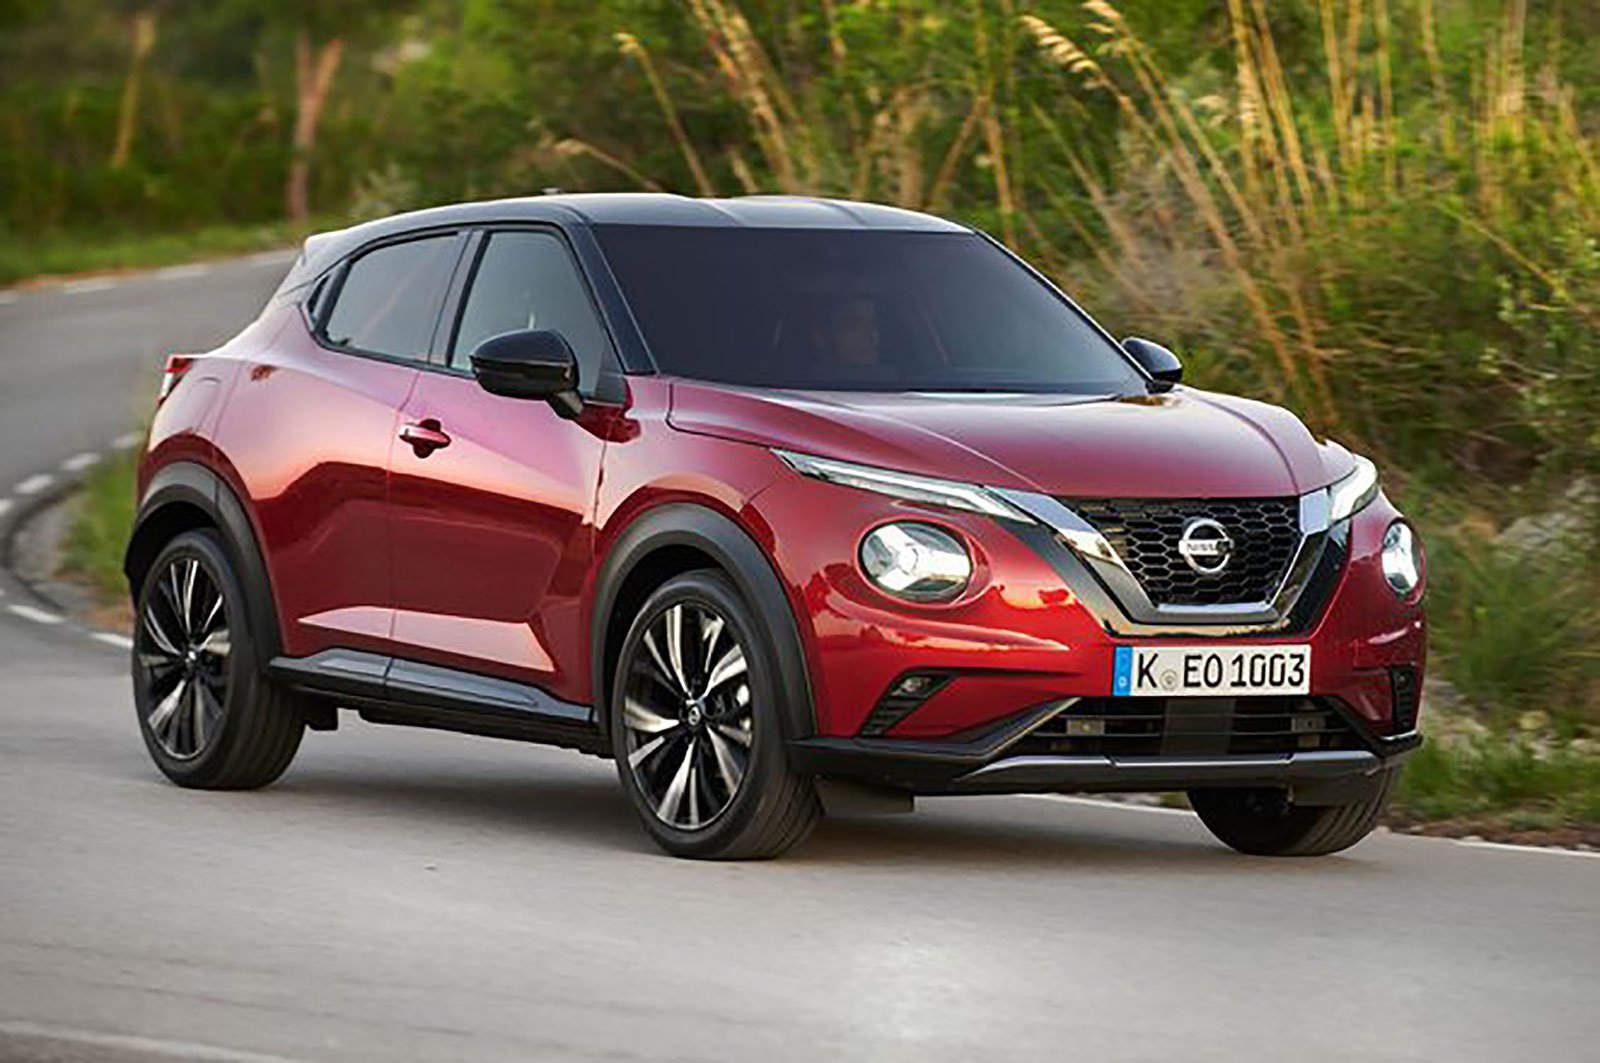 Nissan Juke front and side